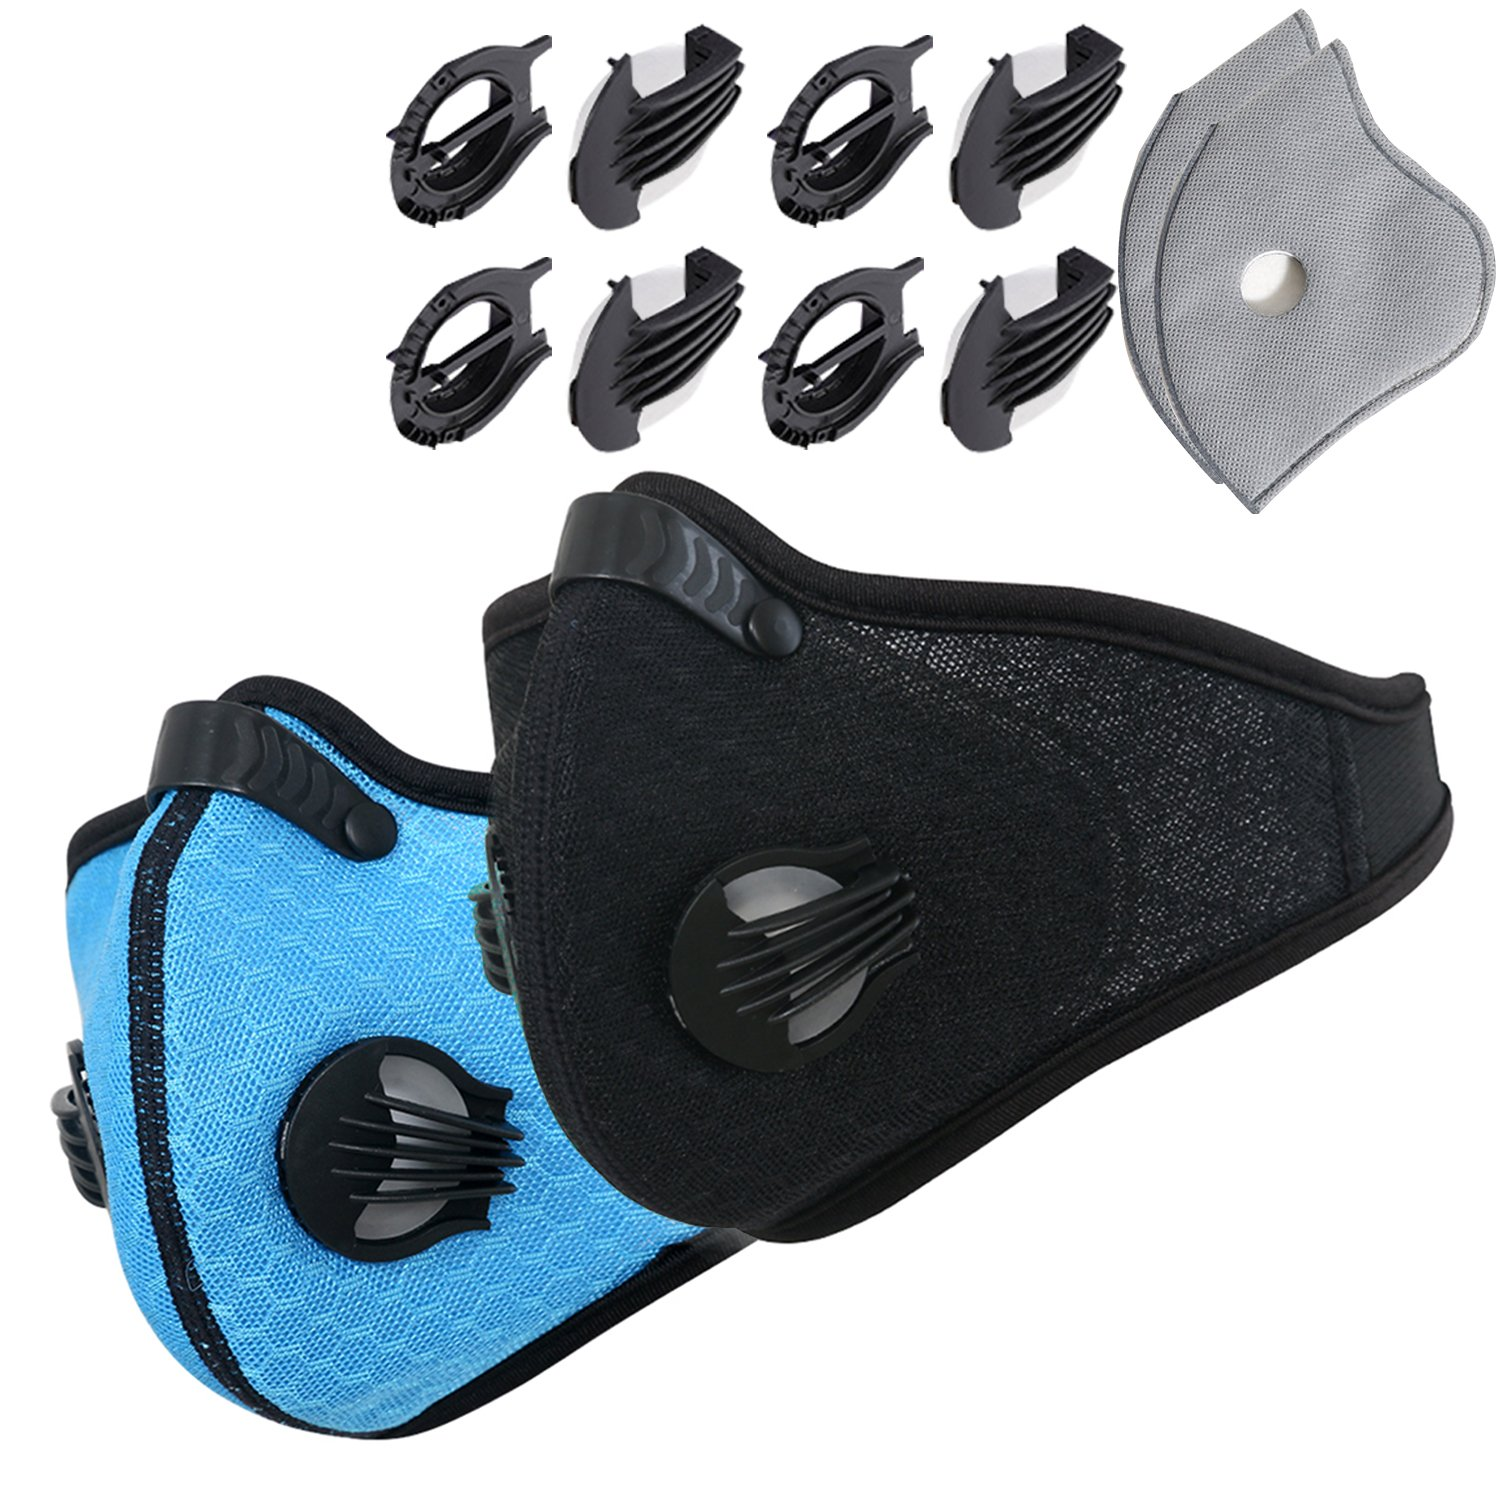 Novemkada Dustproof Masks - Activated Carbon Dust Mask with Extra Filter Cotton Sheet and Valves for Exhaust Gas, Pollen Allergy, PM2.5, Running, Cycling, Outdoor Activities (Black+Blue, Dust Masks)